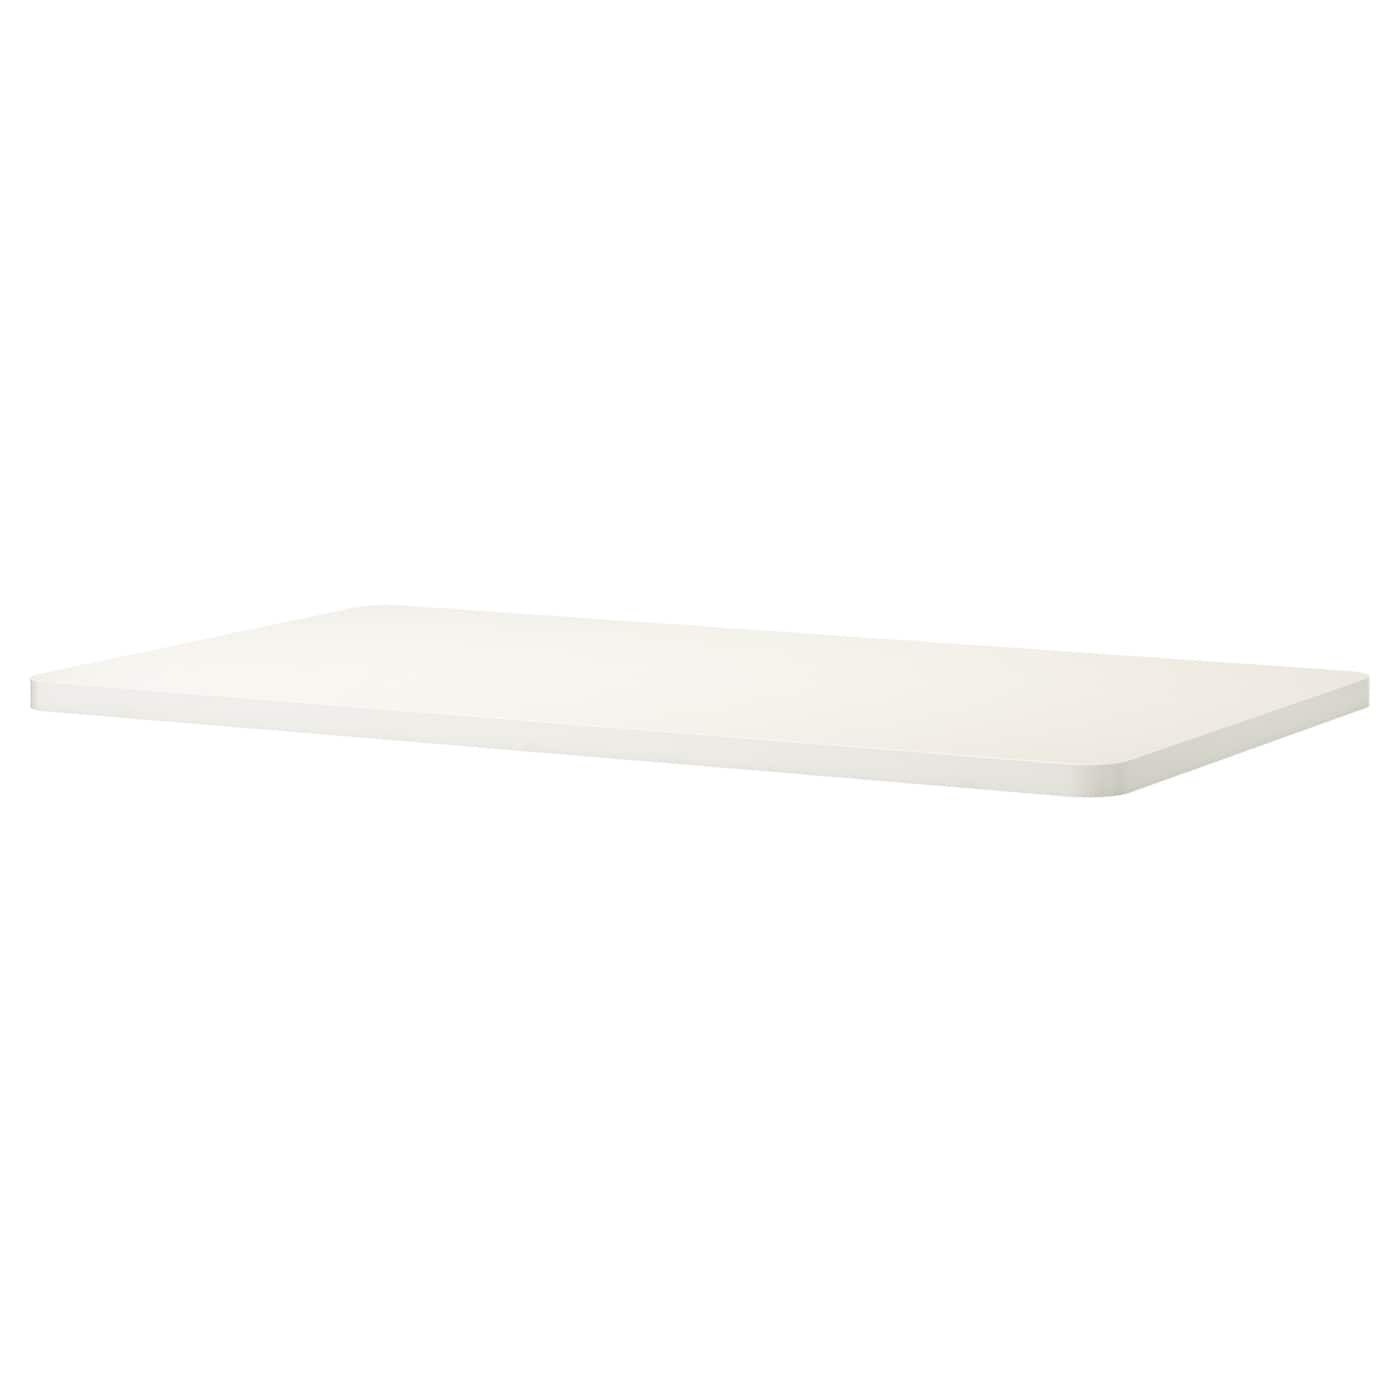 IKEA RYDEBÄCK table top The clear-lacquered surface is easy to wipe clean.